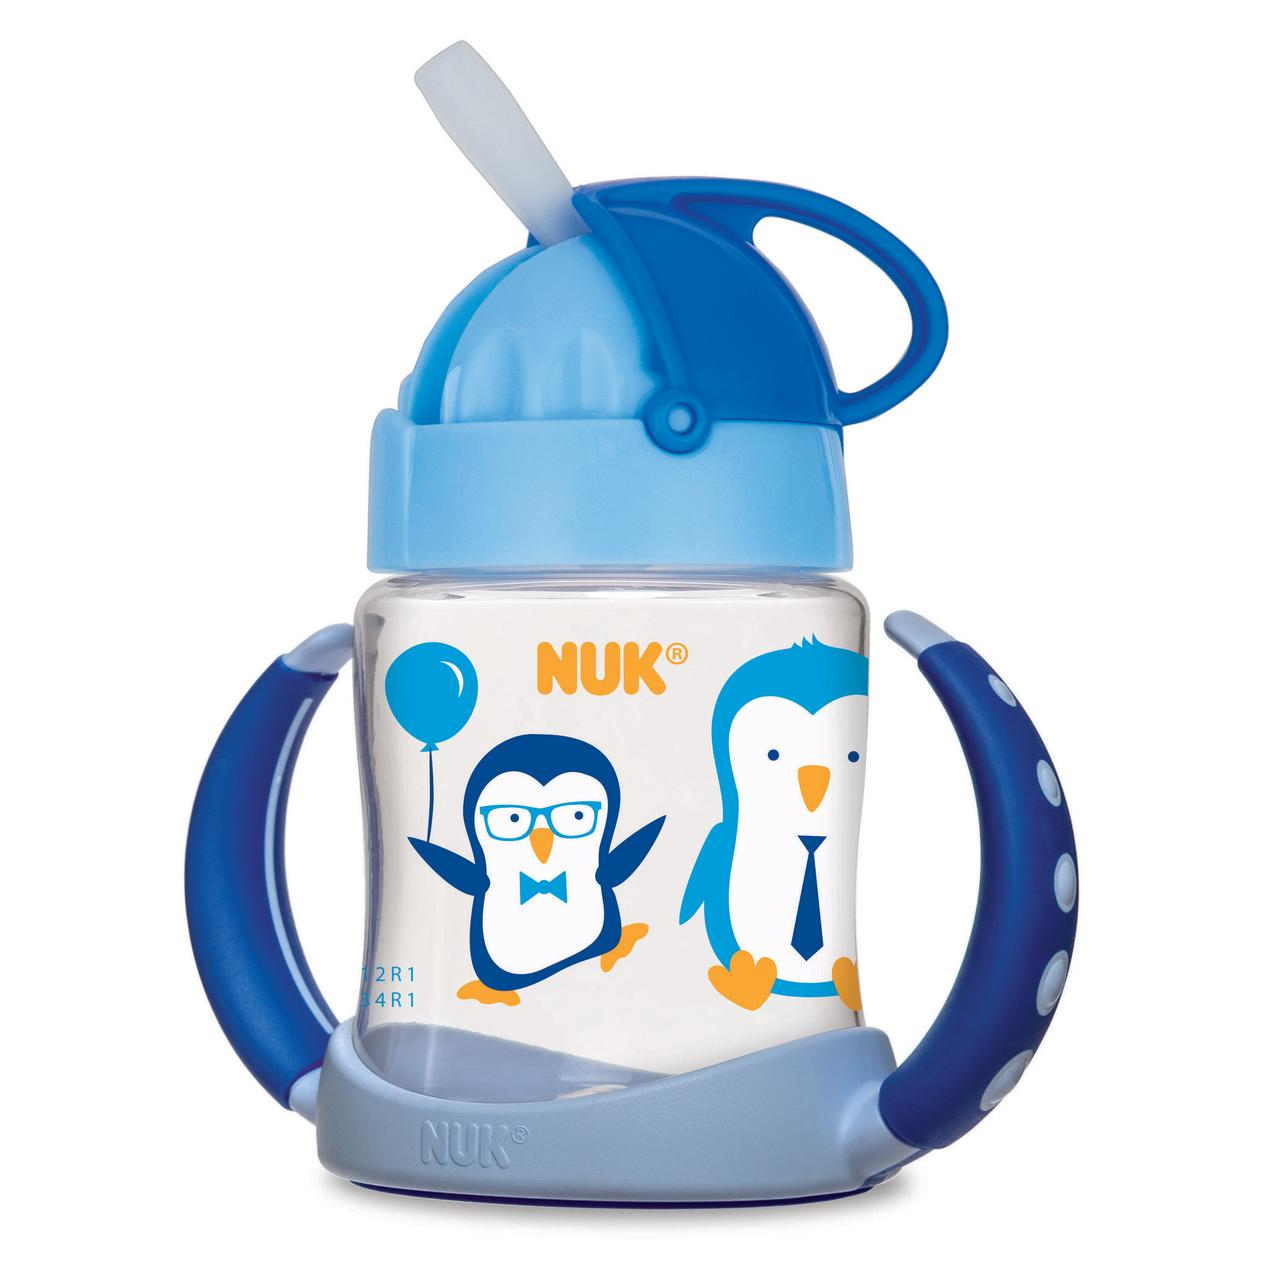 NUK Straw Learner Cup 6+m, 1.0 CT (Design May Vary)